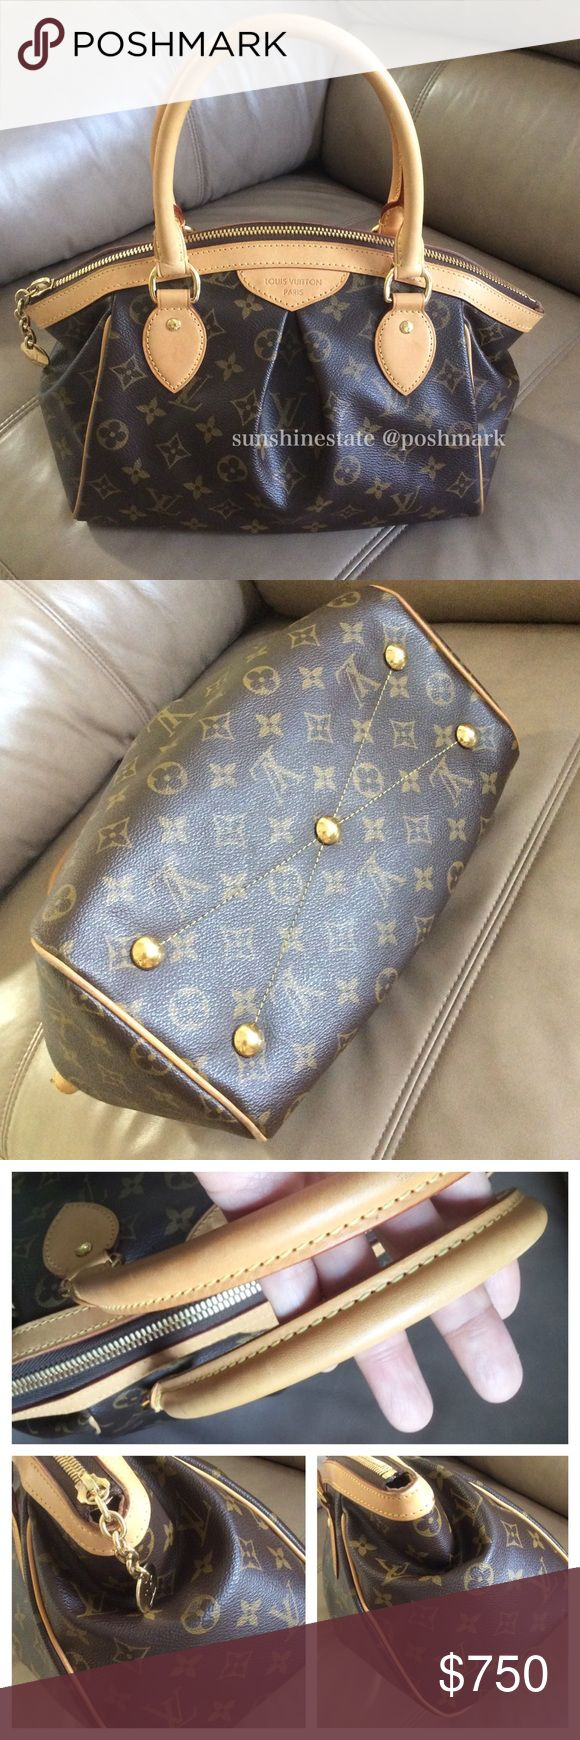 Authentic Louis Vuitton Tivoli PM Like new, very light wear on edges and handles. 100% authentic! Louis Vuitton Bags Satchels